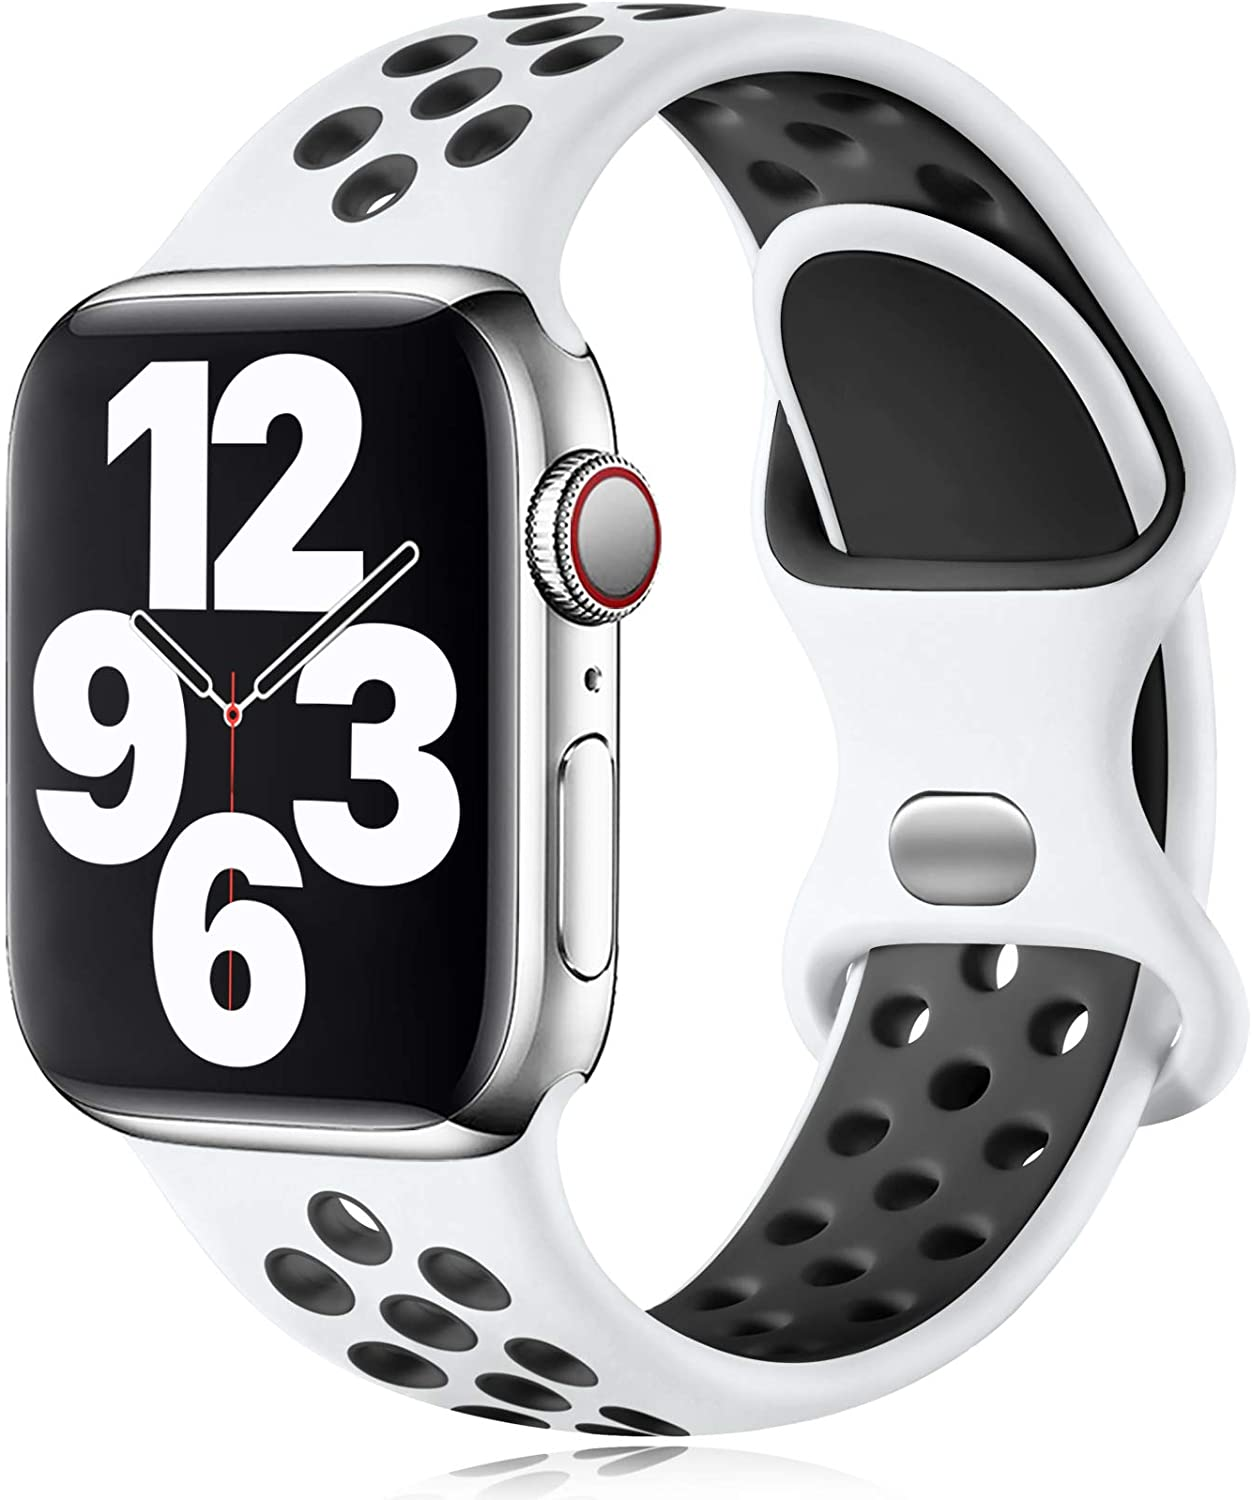 Vcegari Compatible with Apple Watch Bands 42mm 44mm, Soft Breathable Silicone Strap for Women Men, Wristband for iWatch SE Series 6 5 4 3 2 1, White/Black S/M